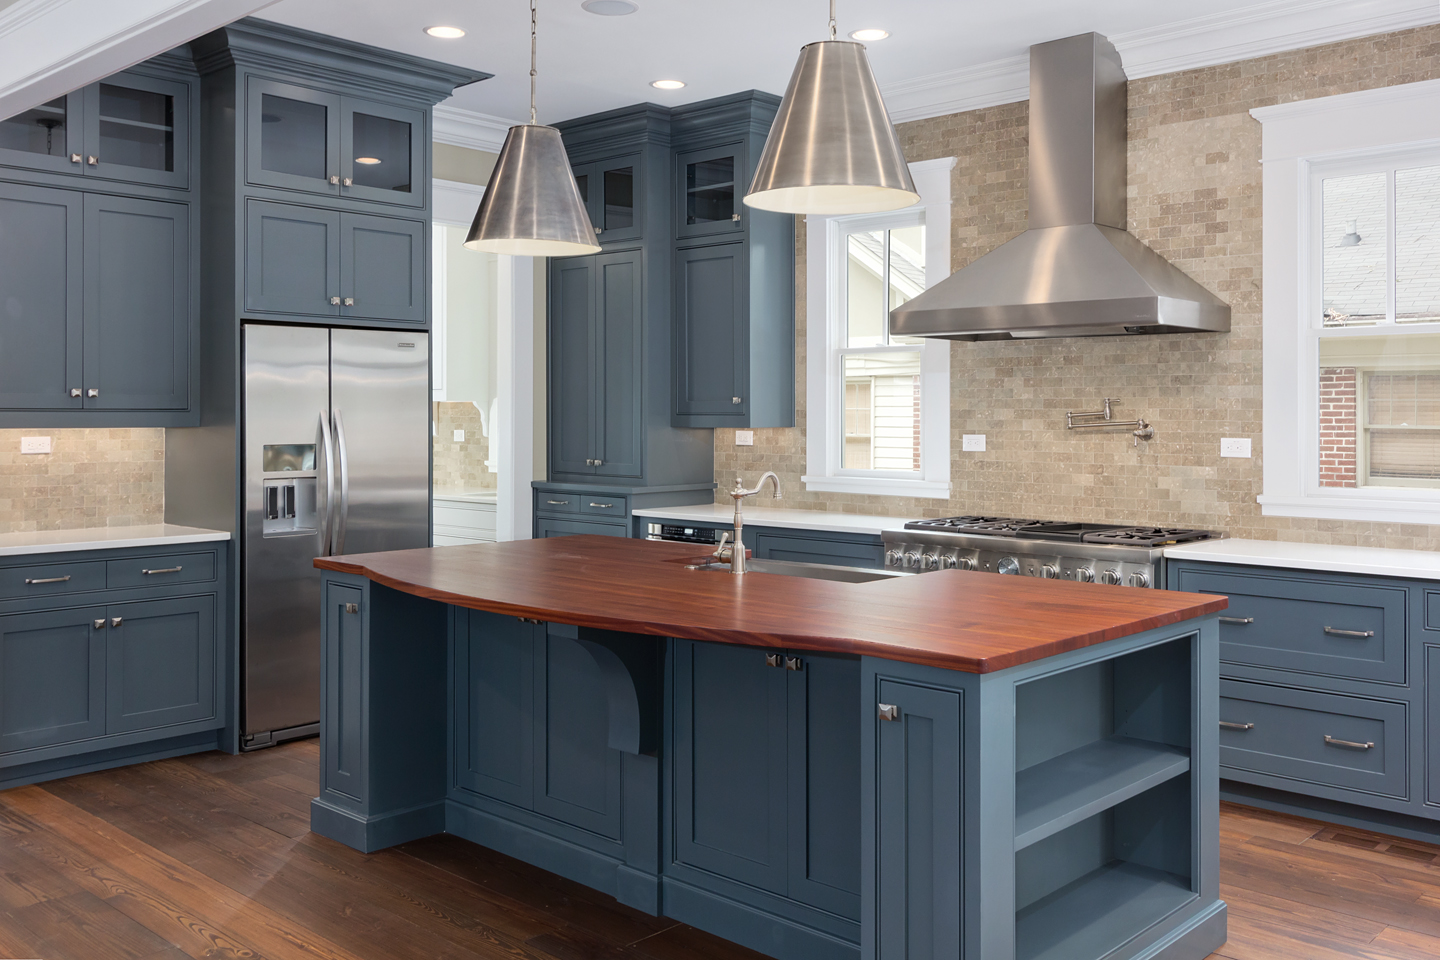 kitchen cabinets atlanta with Interiors on Is Shabby Chic Furniture A Load Of Old Mess further Kitchen Gallery additionally Kitchen Gallery furthermore 61176 Side By Side Double Oven Range Kitchen Modern With Colorado Denver Fireplace Gray moreover Gs Verdeubatuba.